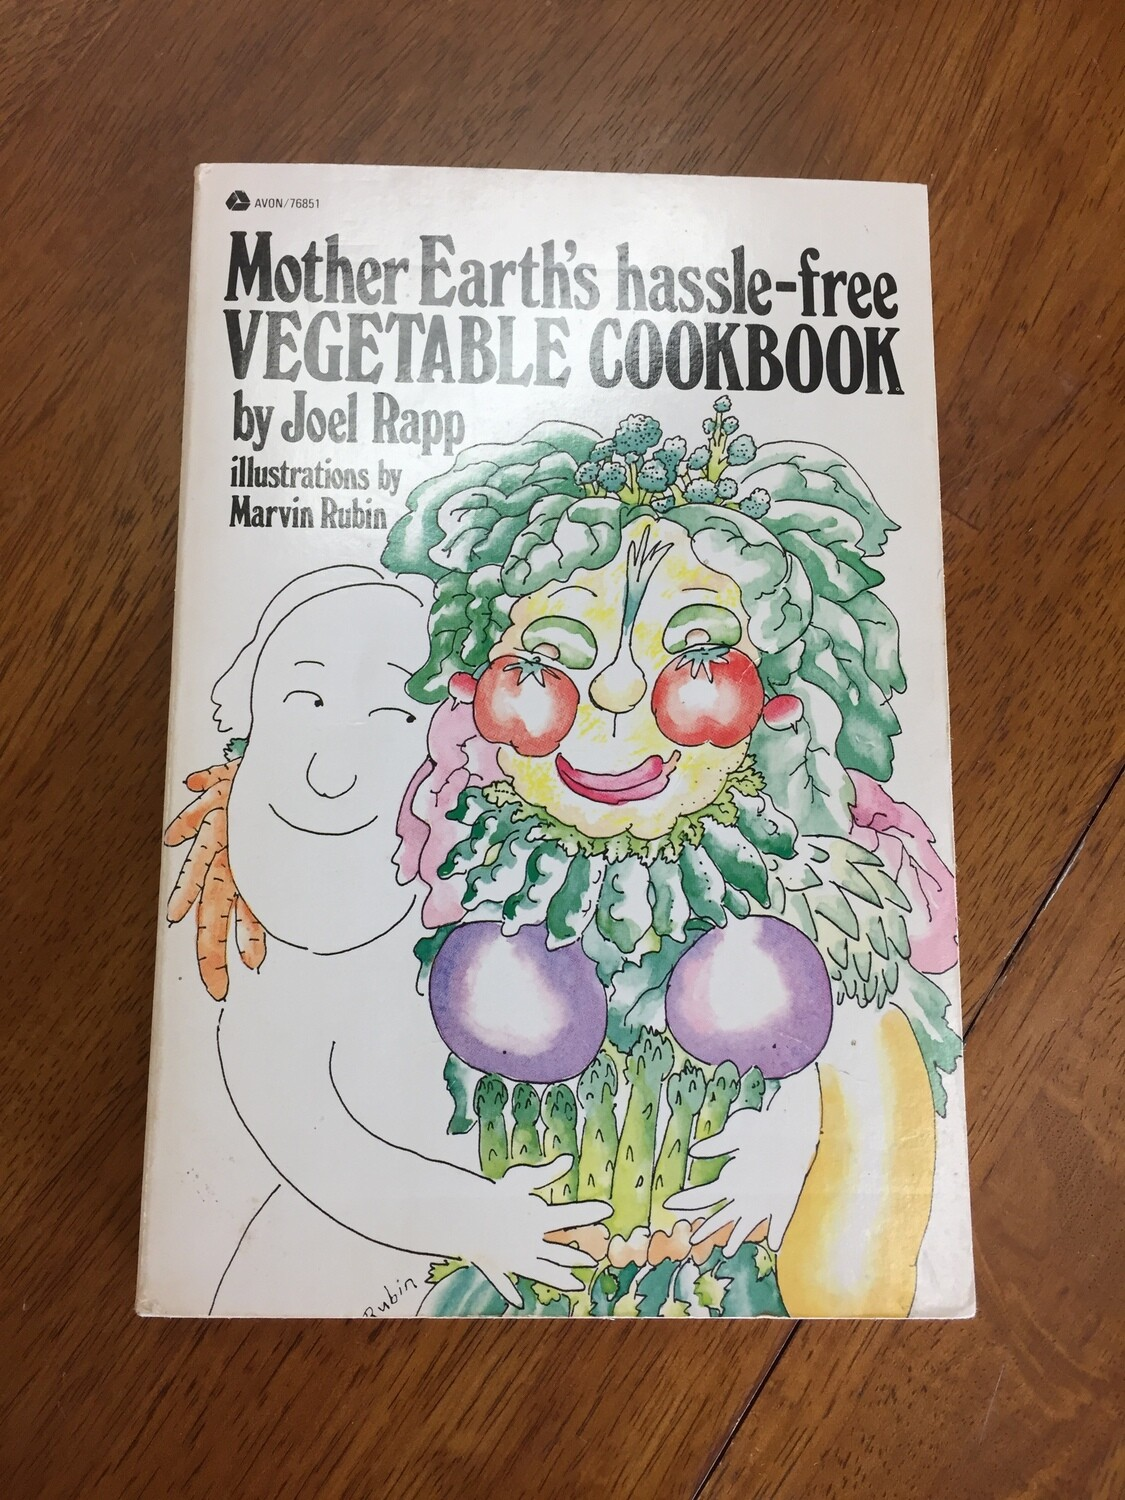 Mother Earth's Hassle-free Vegetable Cookbook